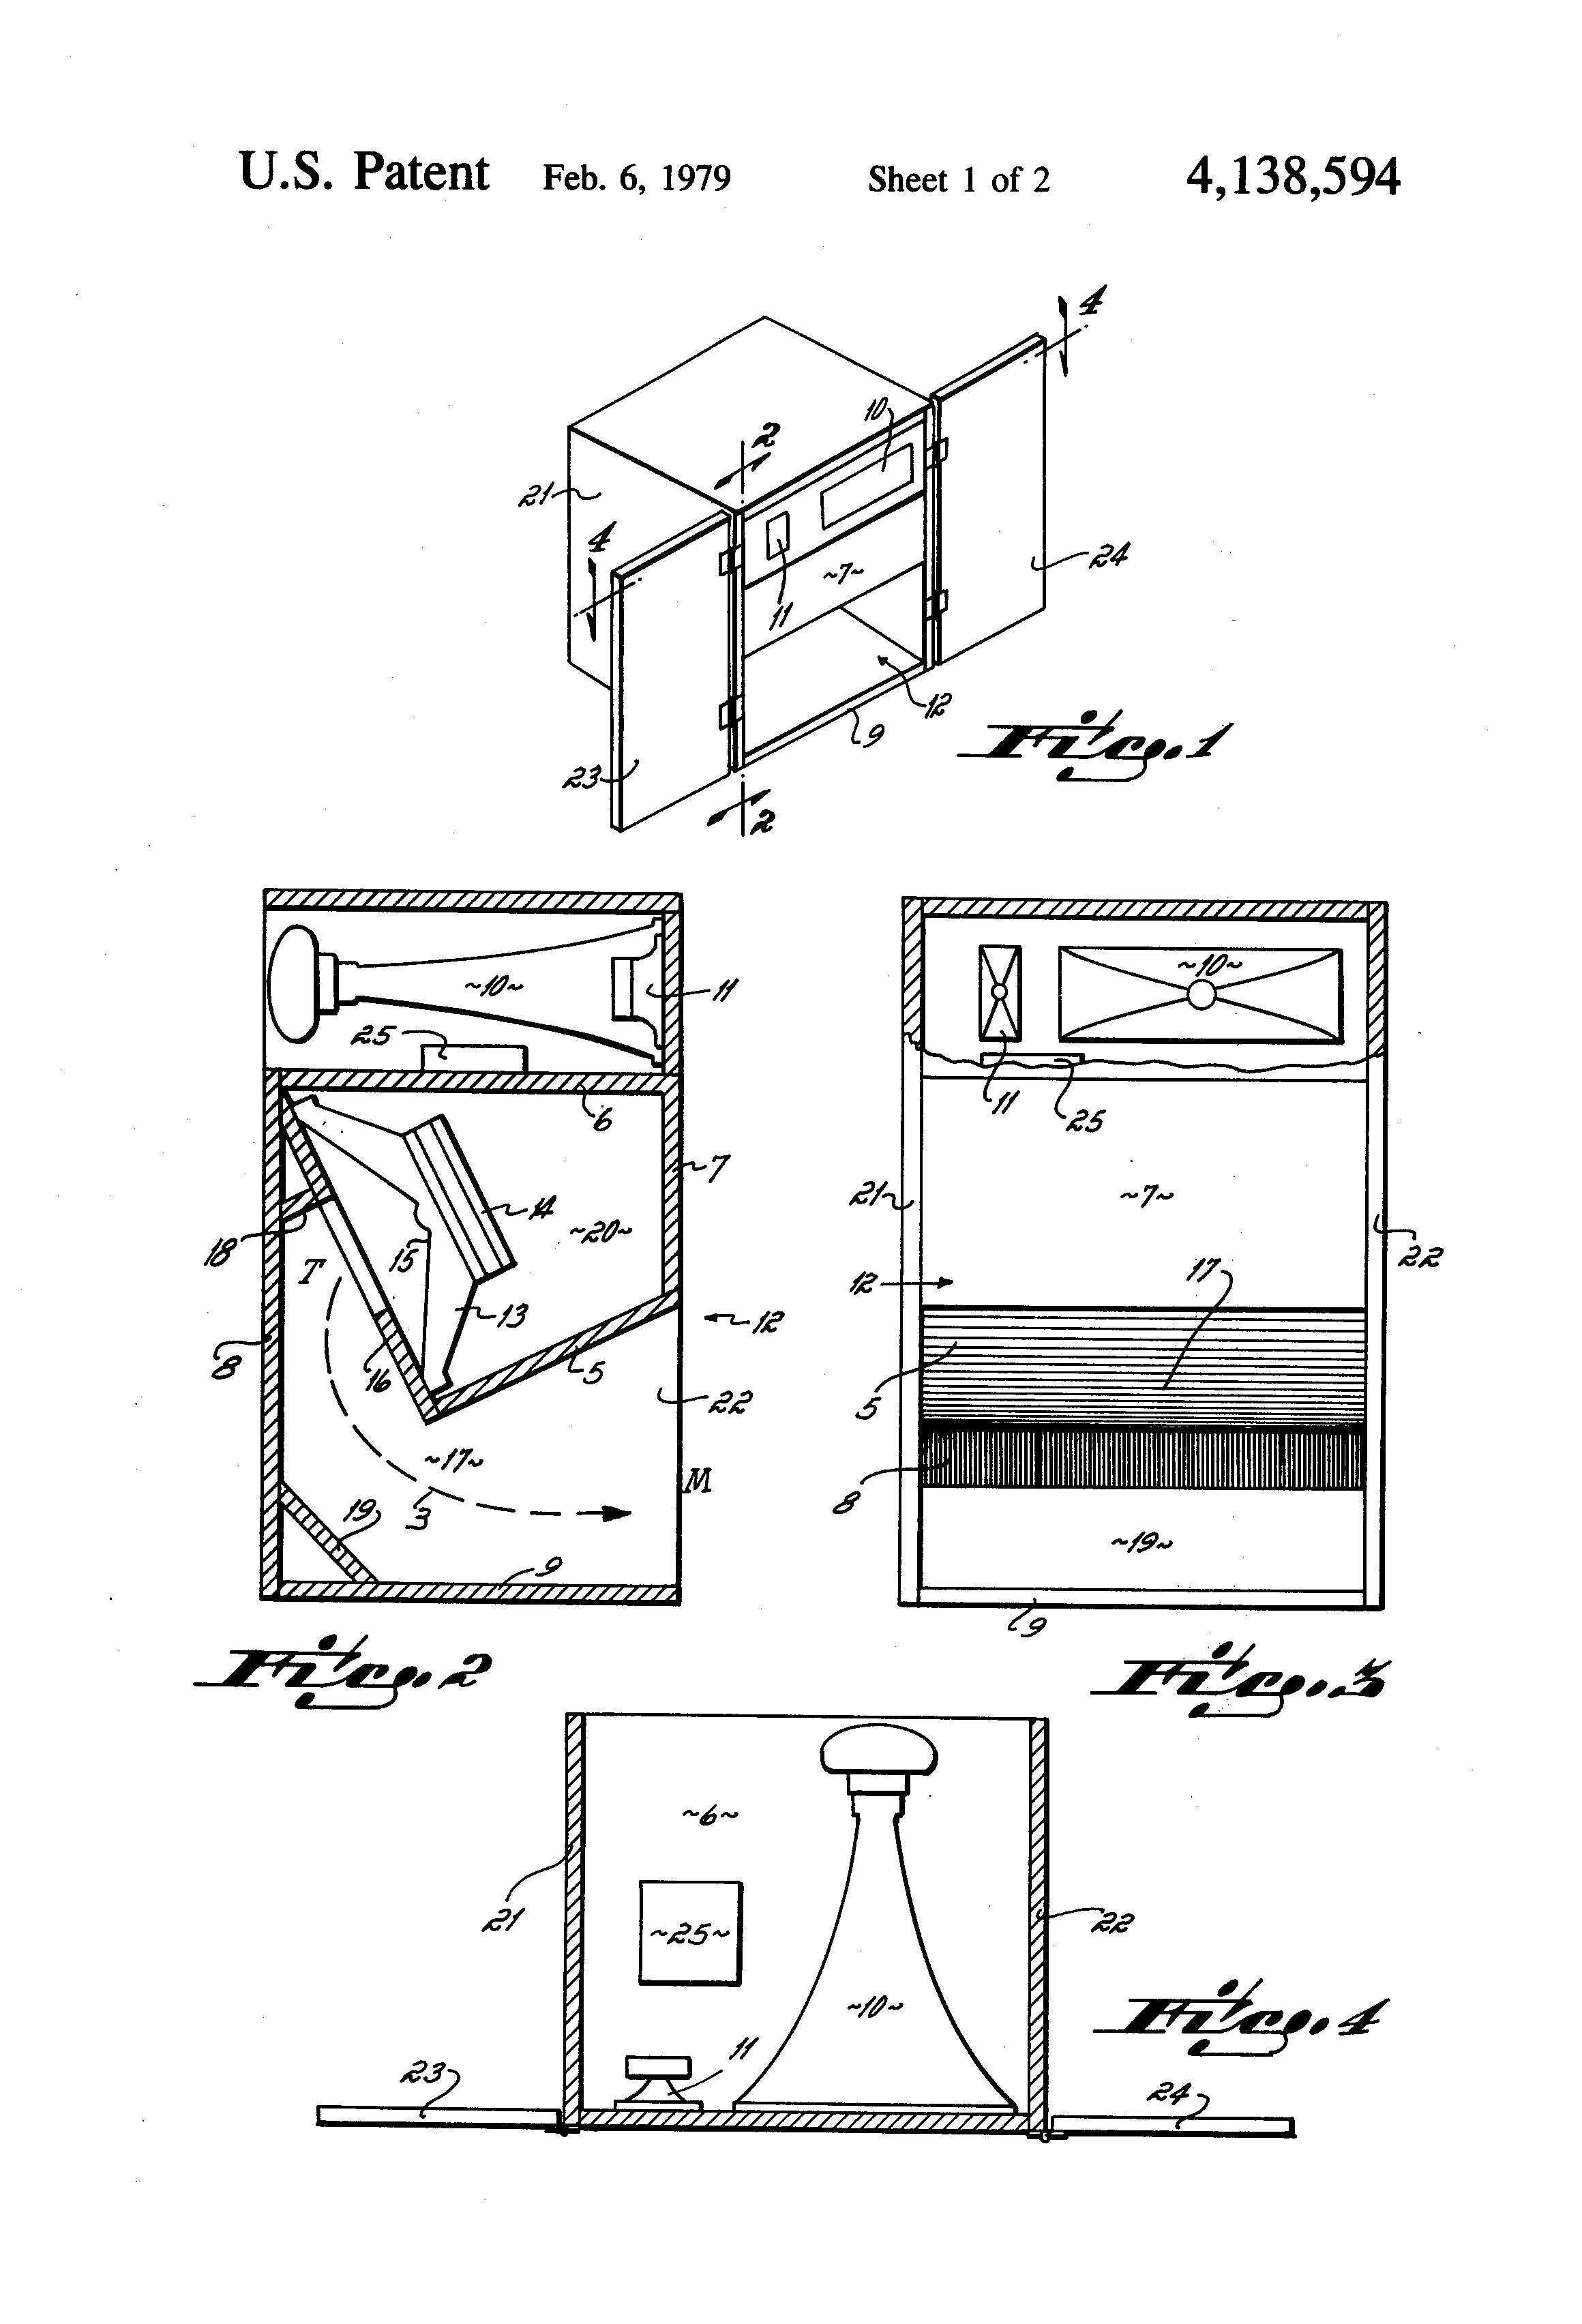 Patent US Small dimension low frequency folded exponential horn loudspeaker with